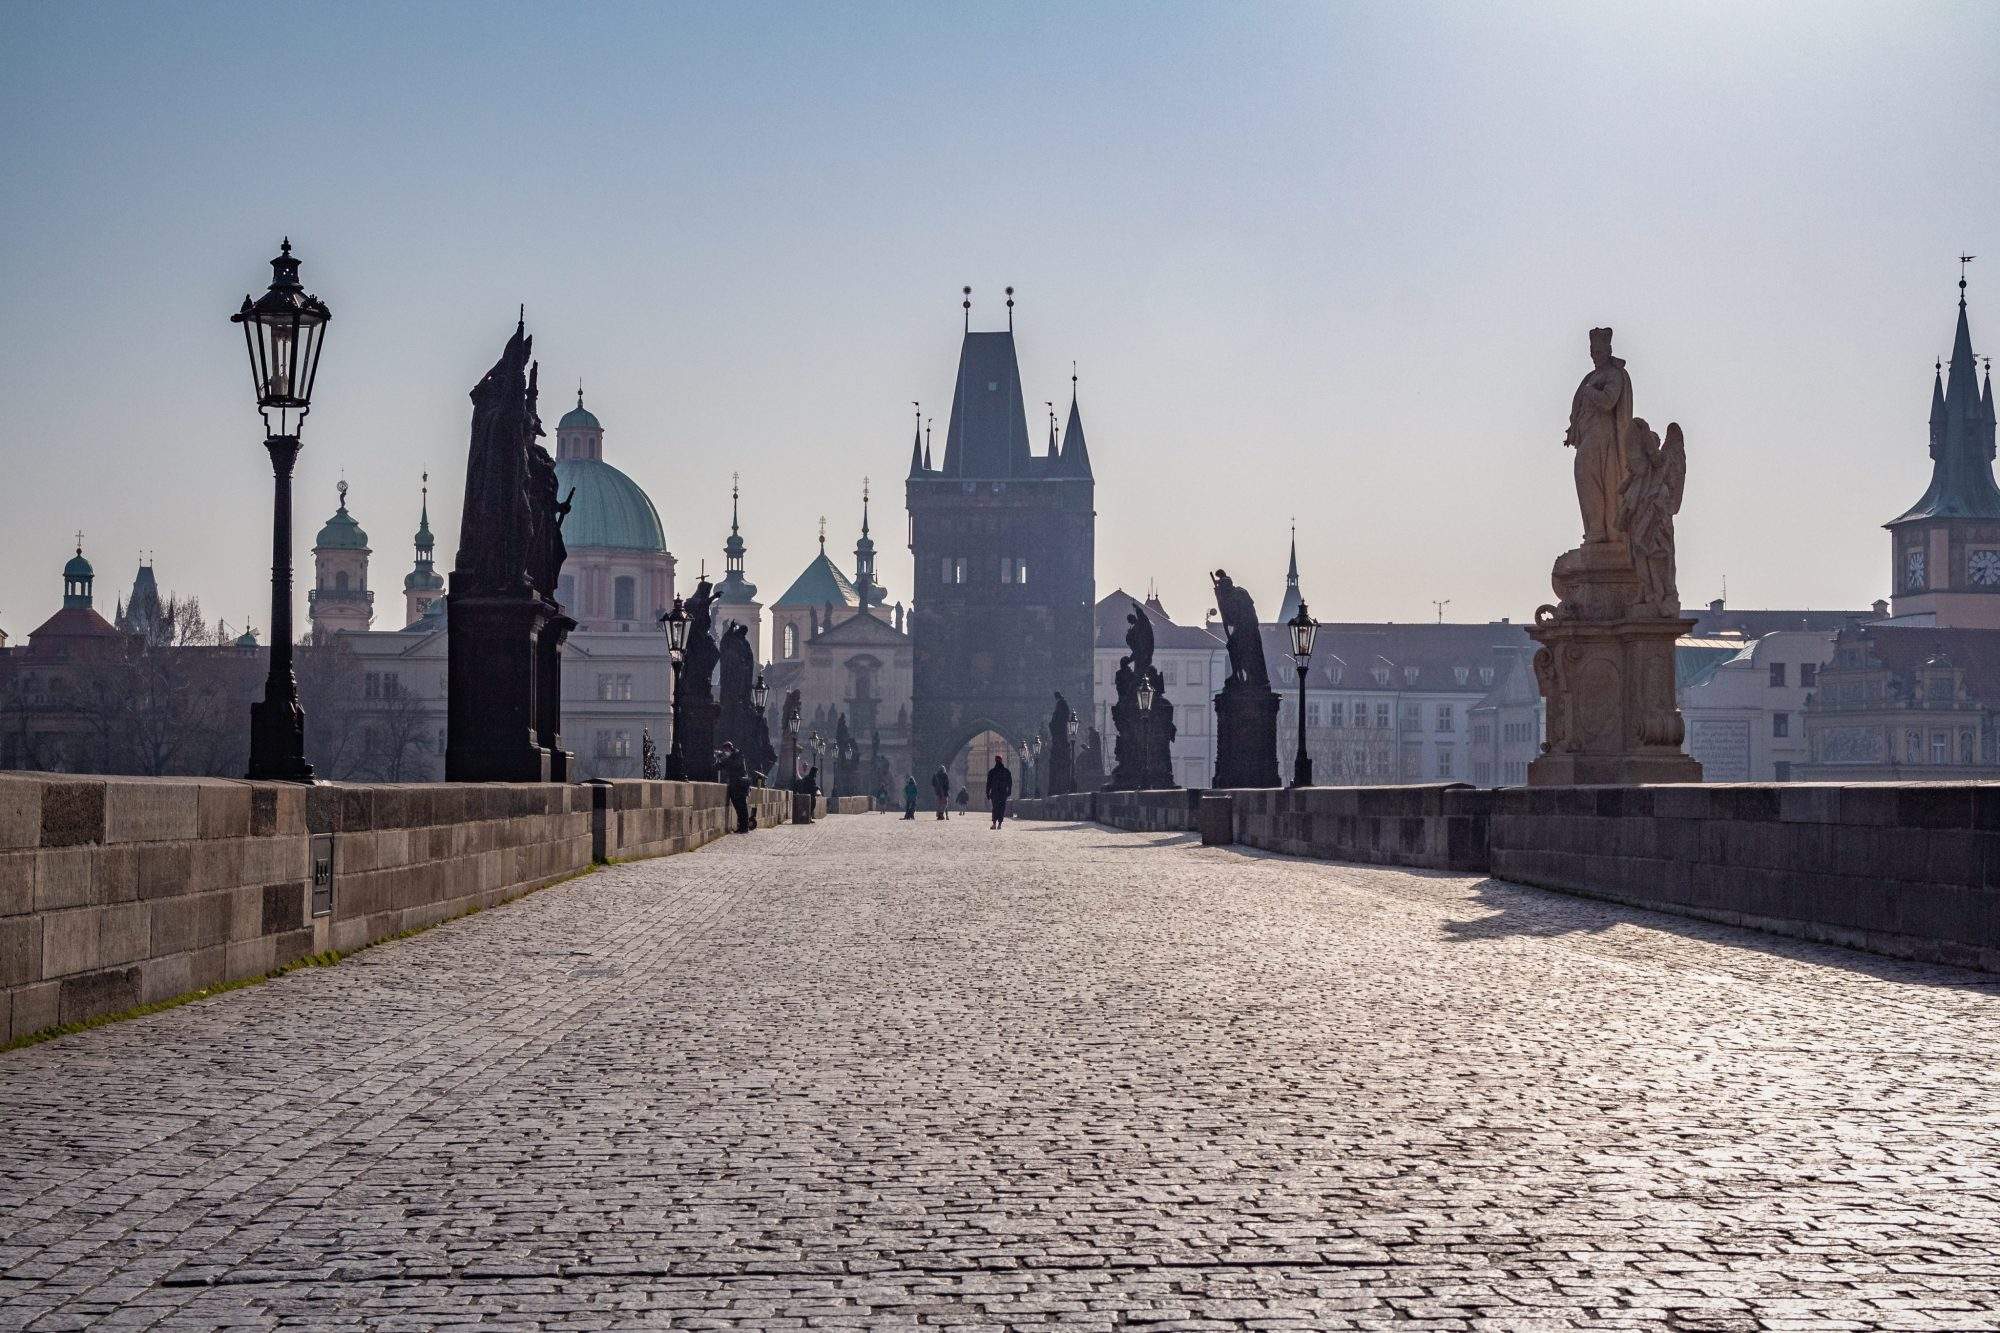 Charles Bridge during the day without toursits